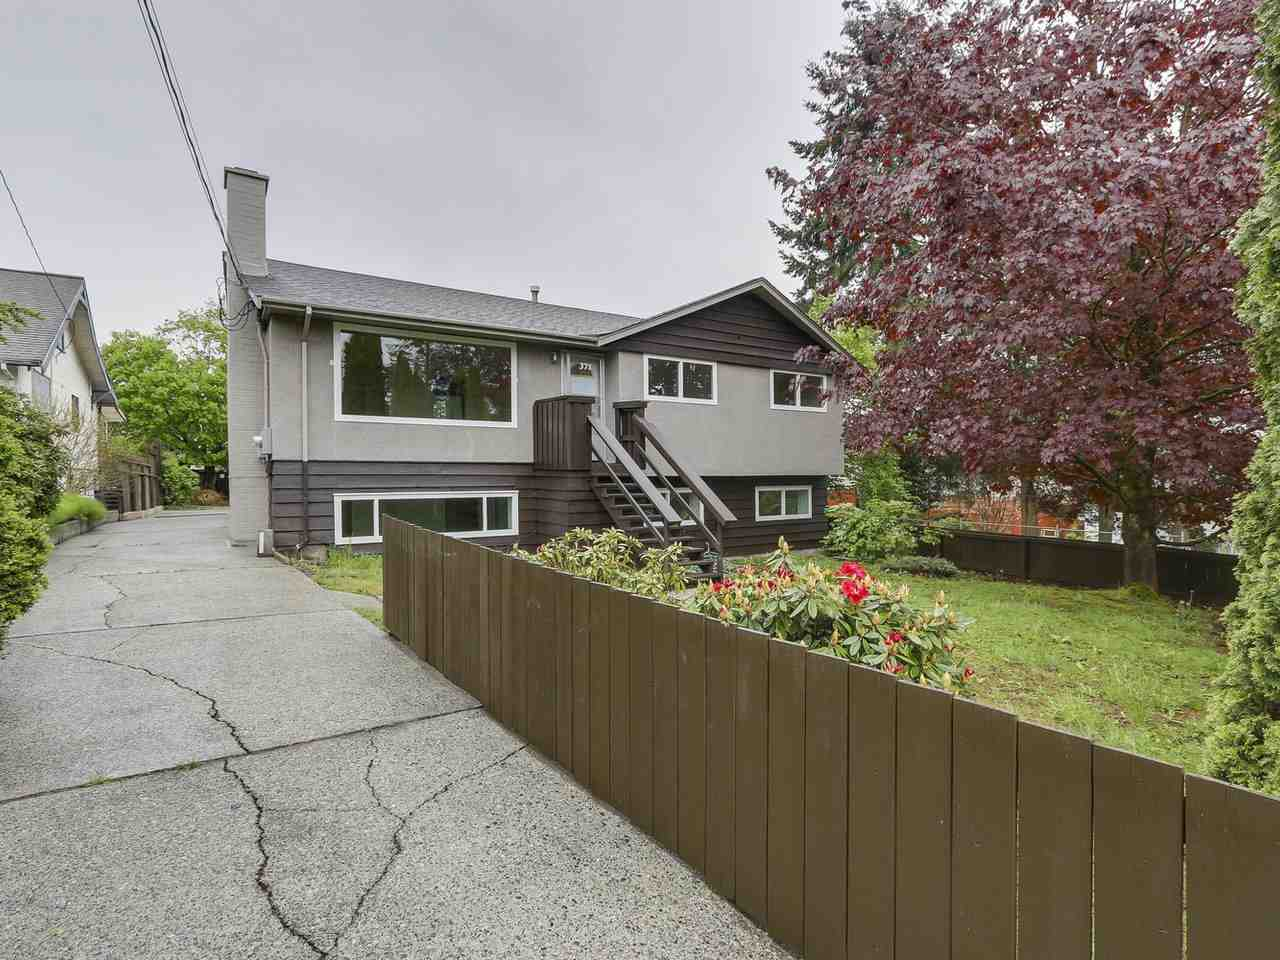 Main Photo: 371 BLUE MOUNTAIN Street in Coquitlam: Maillardville House for sale : MLS® # R2198034